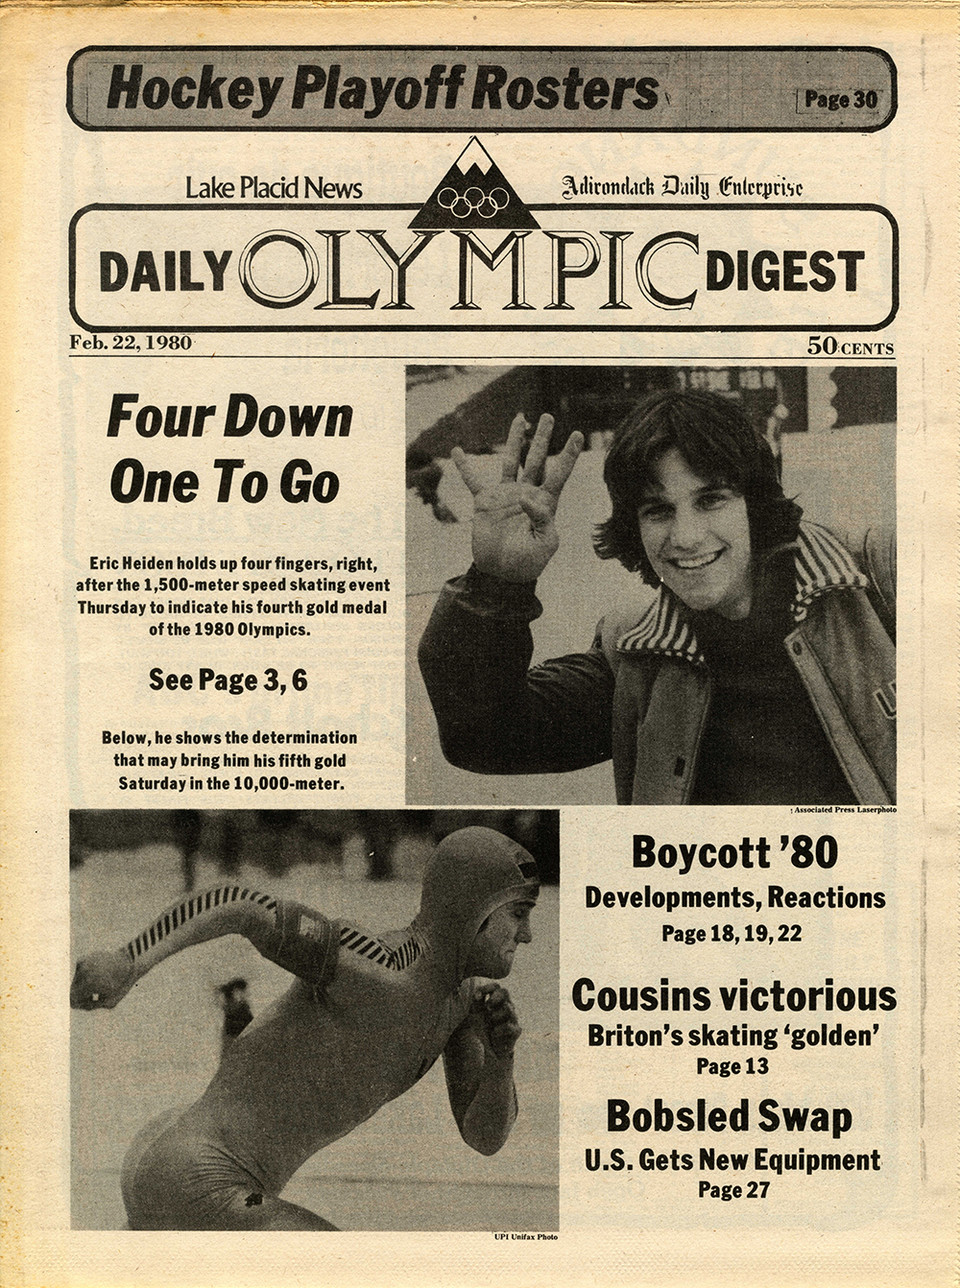 Cover of Lake Placid News on February 22, 1980